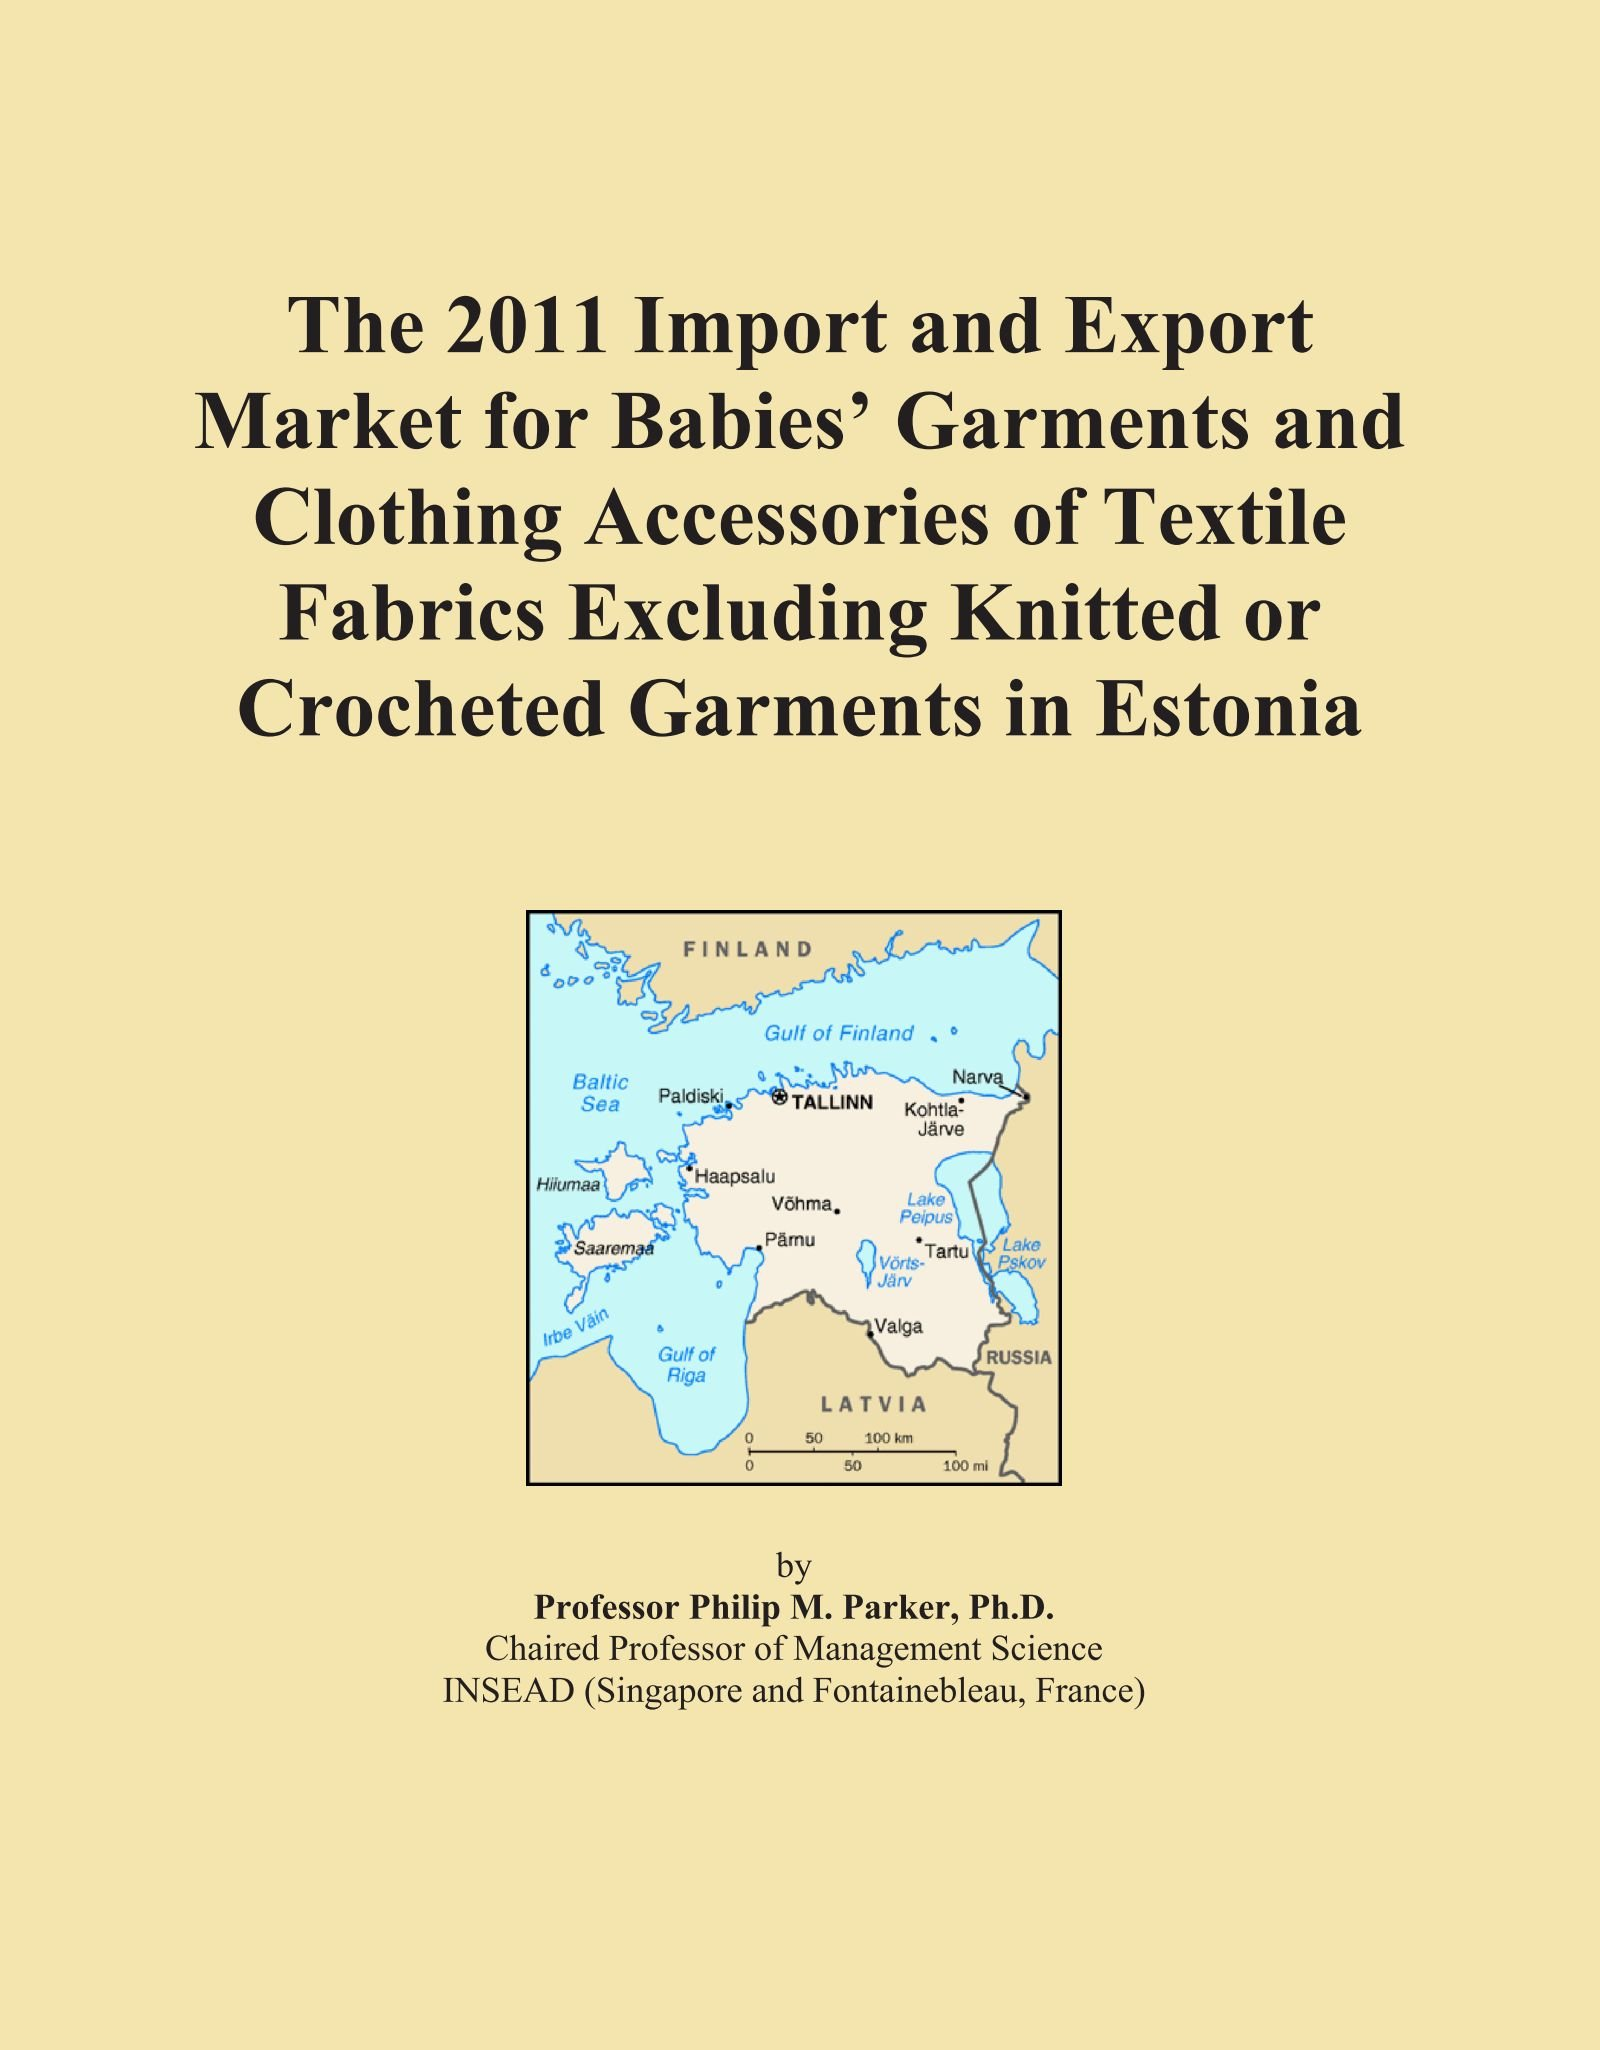 Download The 2011 Import and Export Market for Babies' Garments and Clothing Accessories of Textile Fabrics Excluding Knitted or Crocheted Garments in Estonia PDF